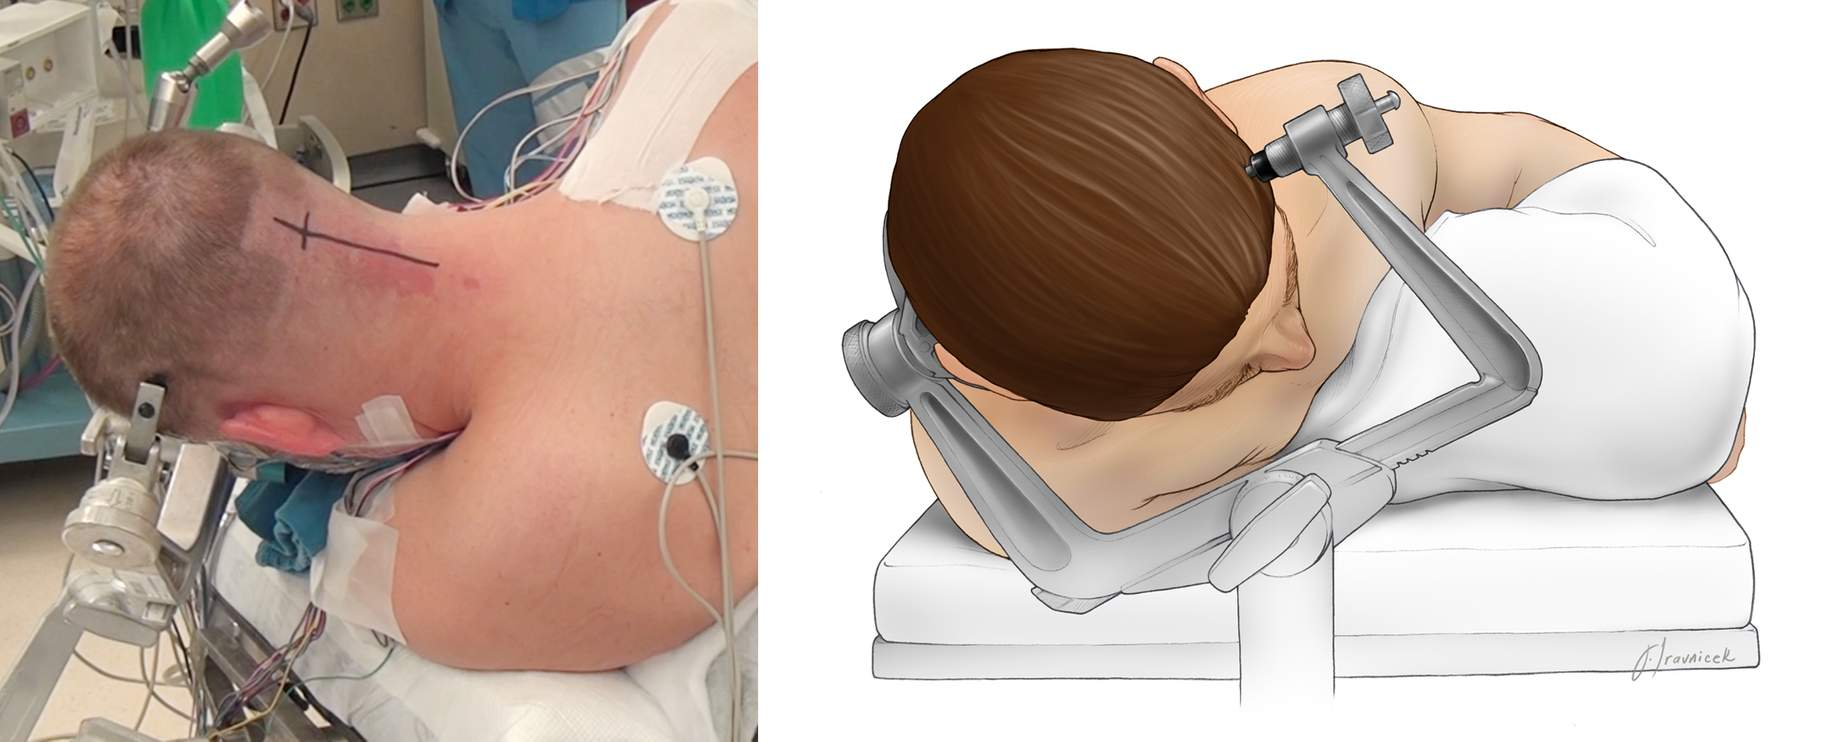 Figure 11: Patient positions during midline suboccipital (left) and retromastoid (right) operations.